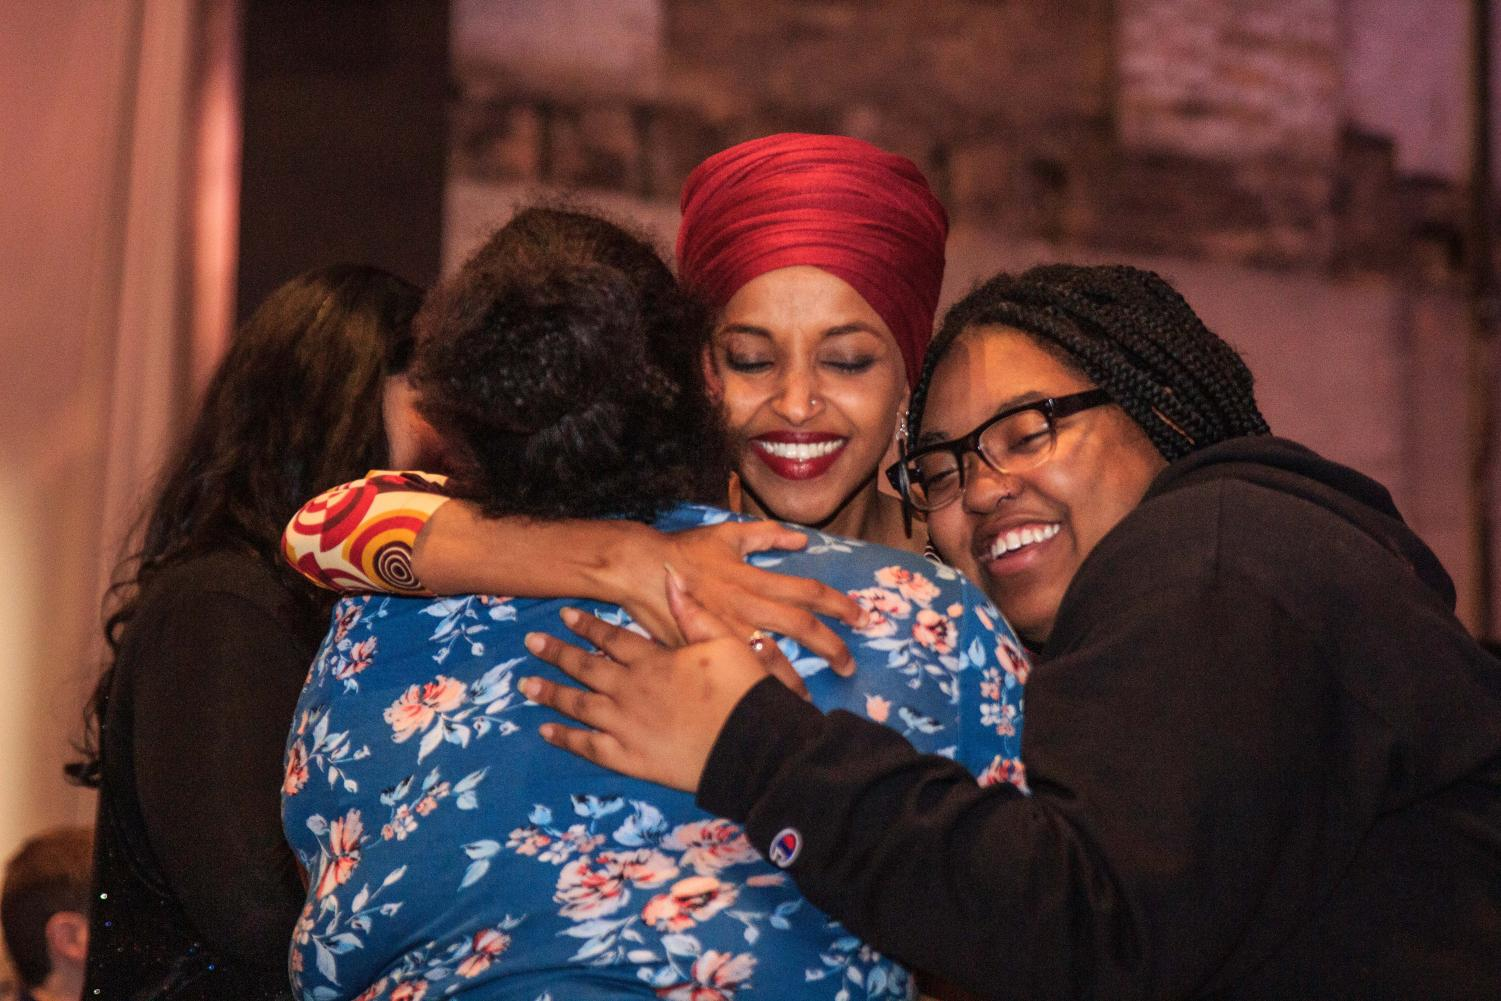 Congresswoman Ilhan Omar (D-MN) embraces supporters at her reelection campaign kickoff event before taking the stage Jan. 23.